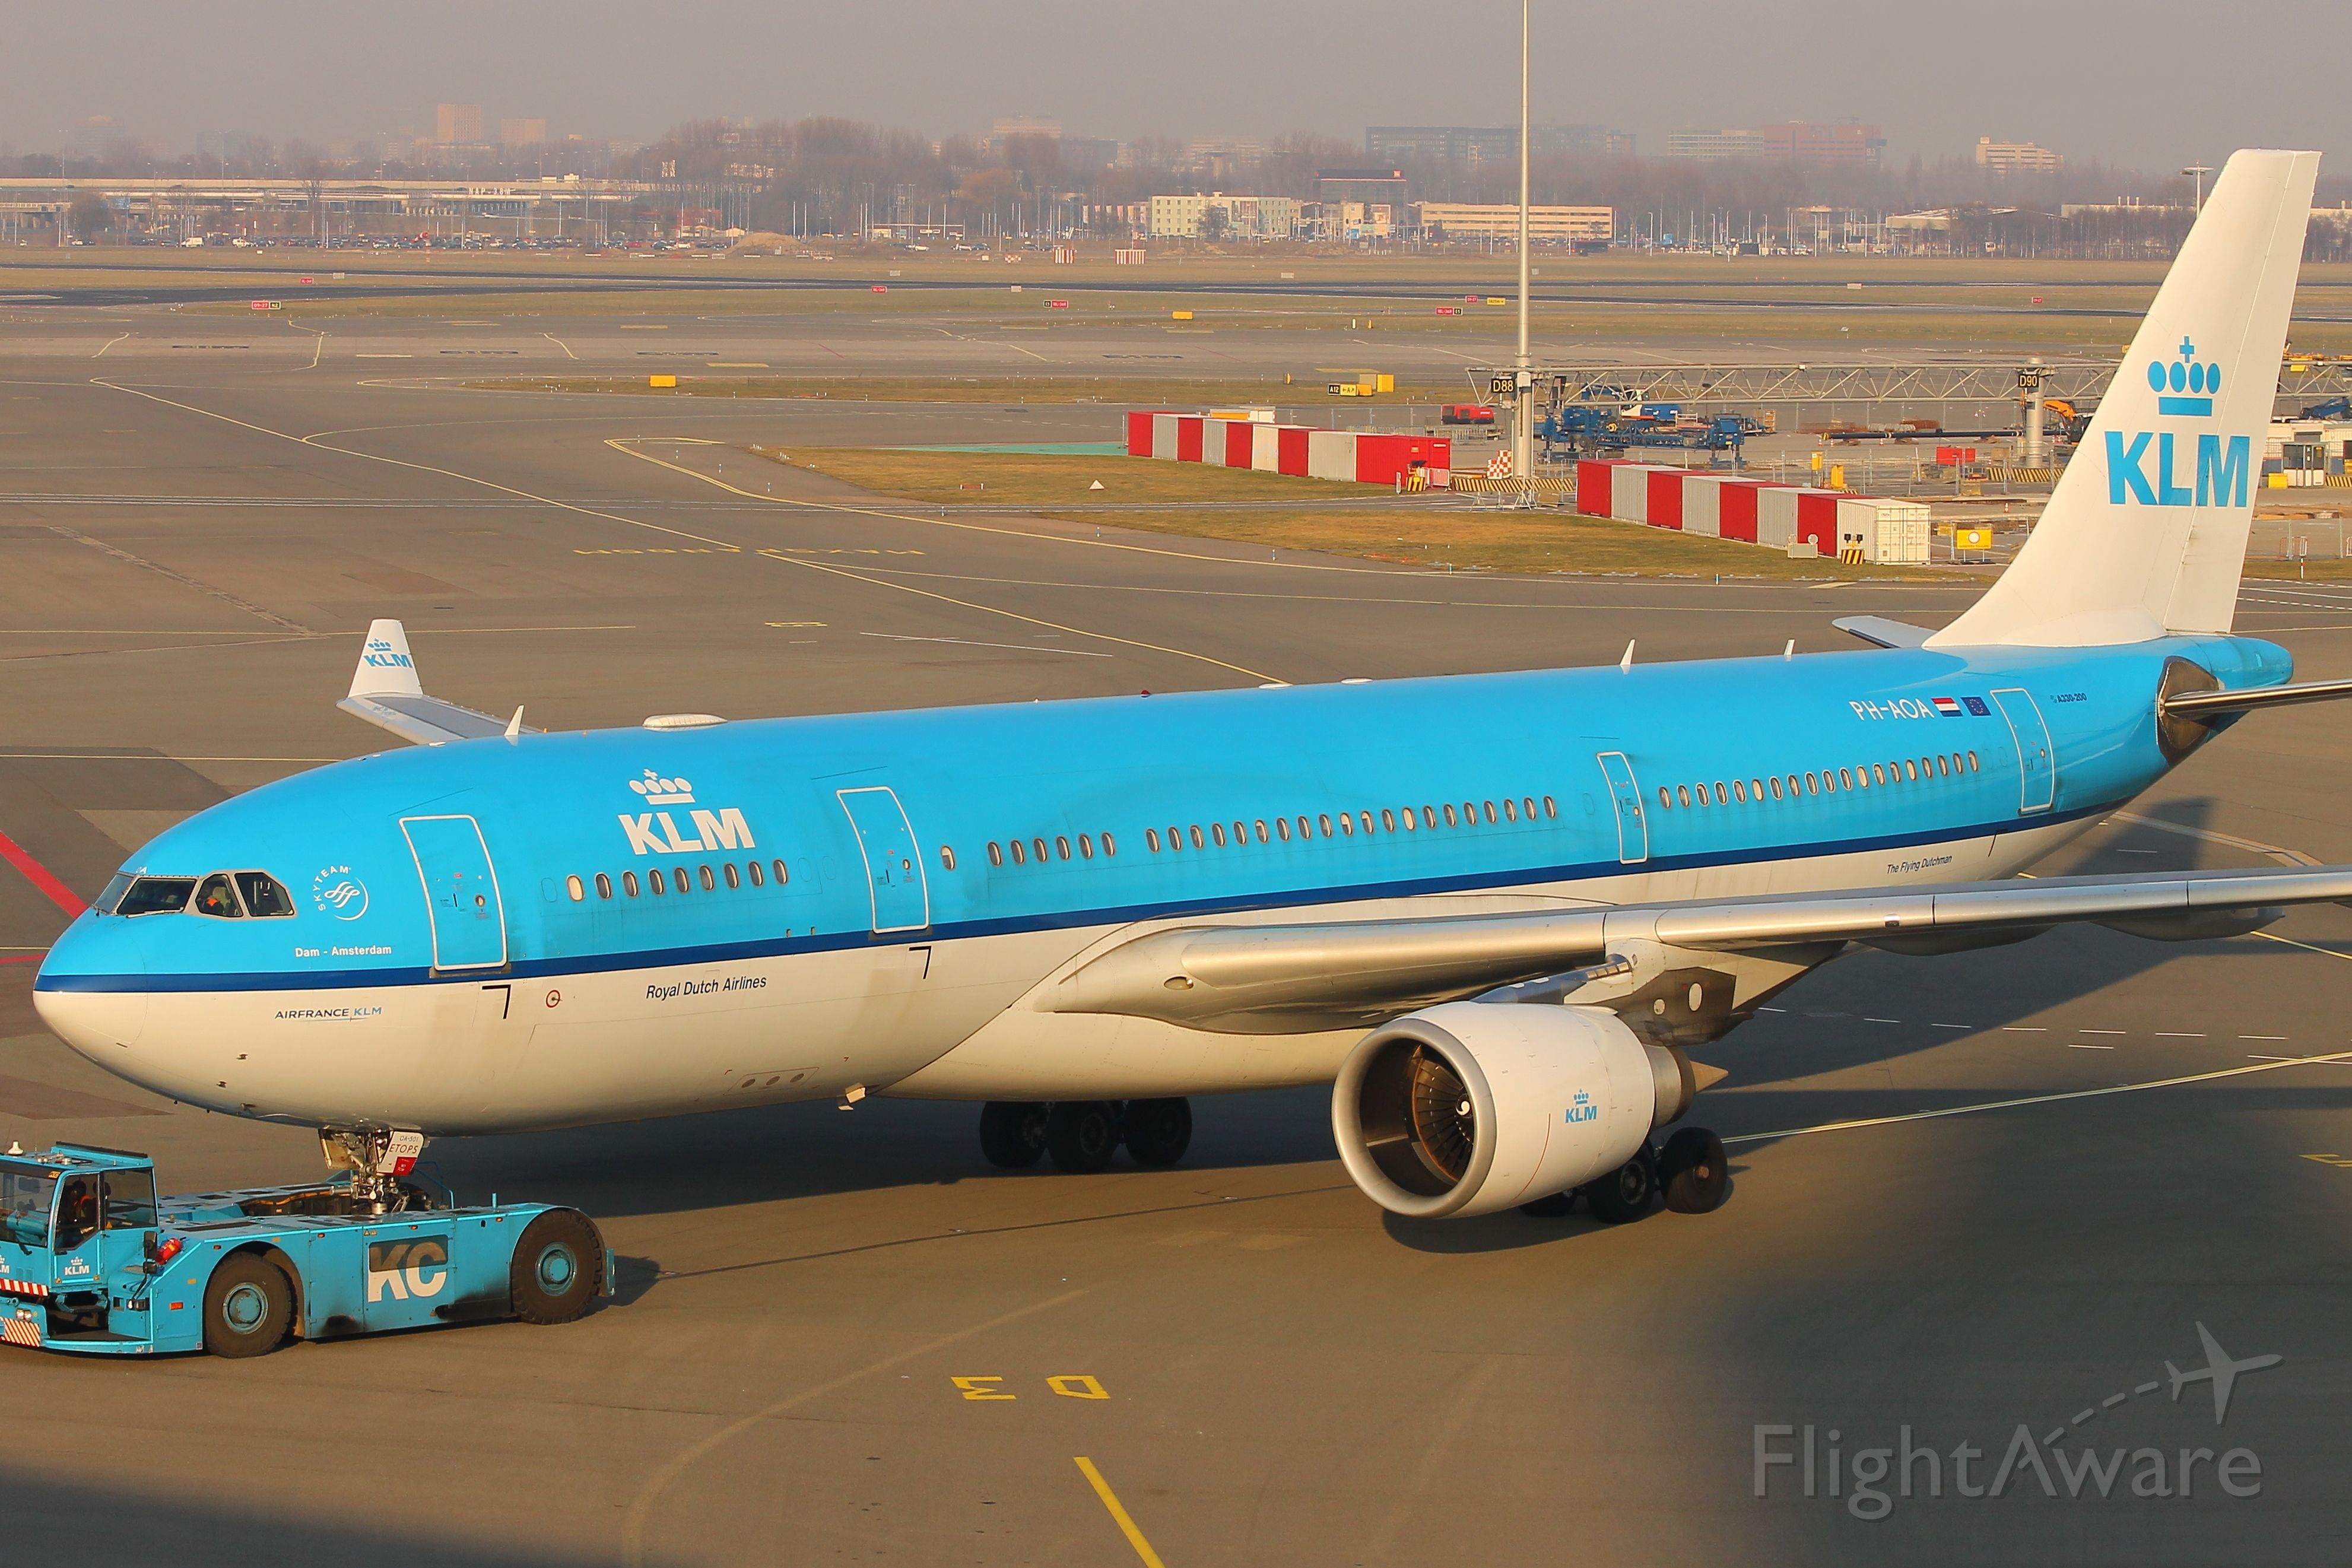 Airbus A330-200 (PH-AOA) - PH-AOA KLM Airbus A330-200 being towed to its gate at Amsterdam Schiphol at 16:22 on Sunday 18/02/18 ahead of doing flight KL575 to Luanda, Angola at 23:00 hours